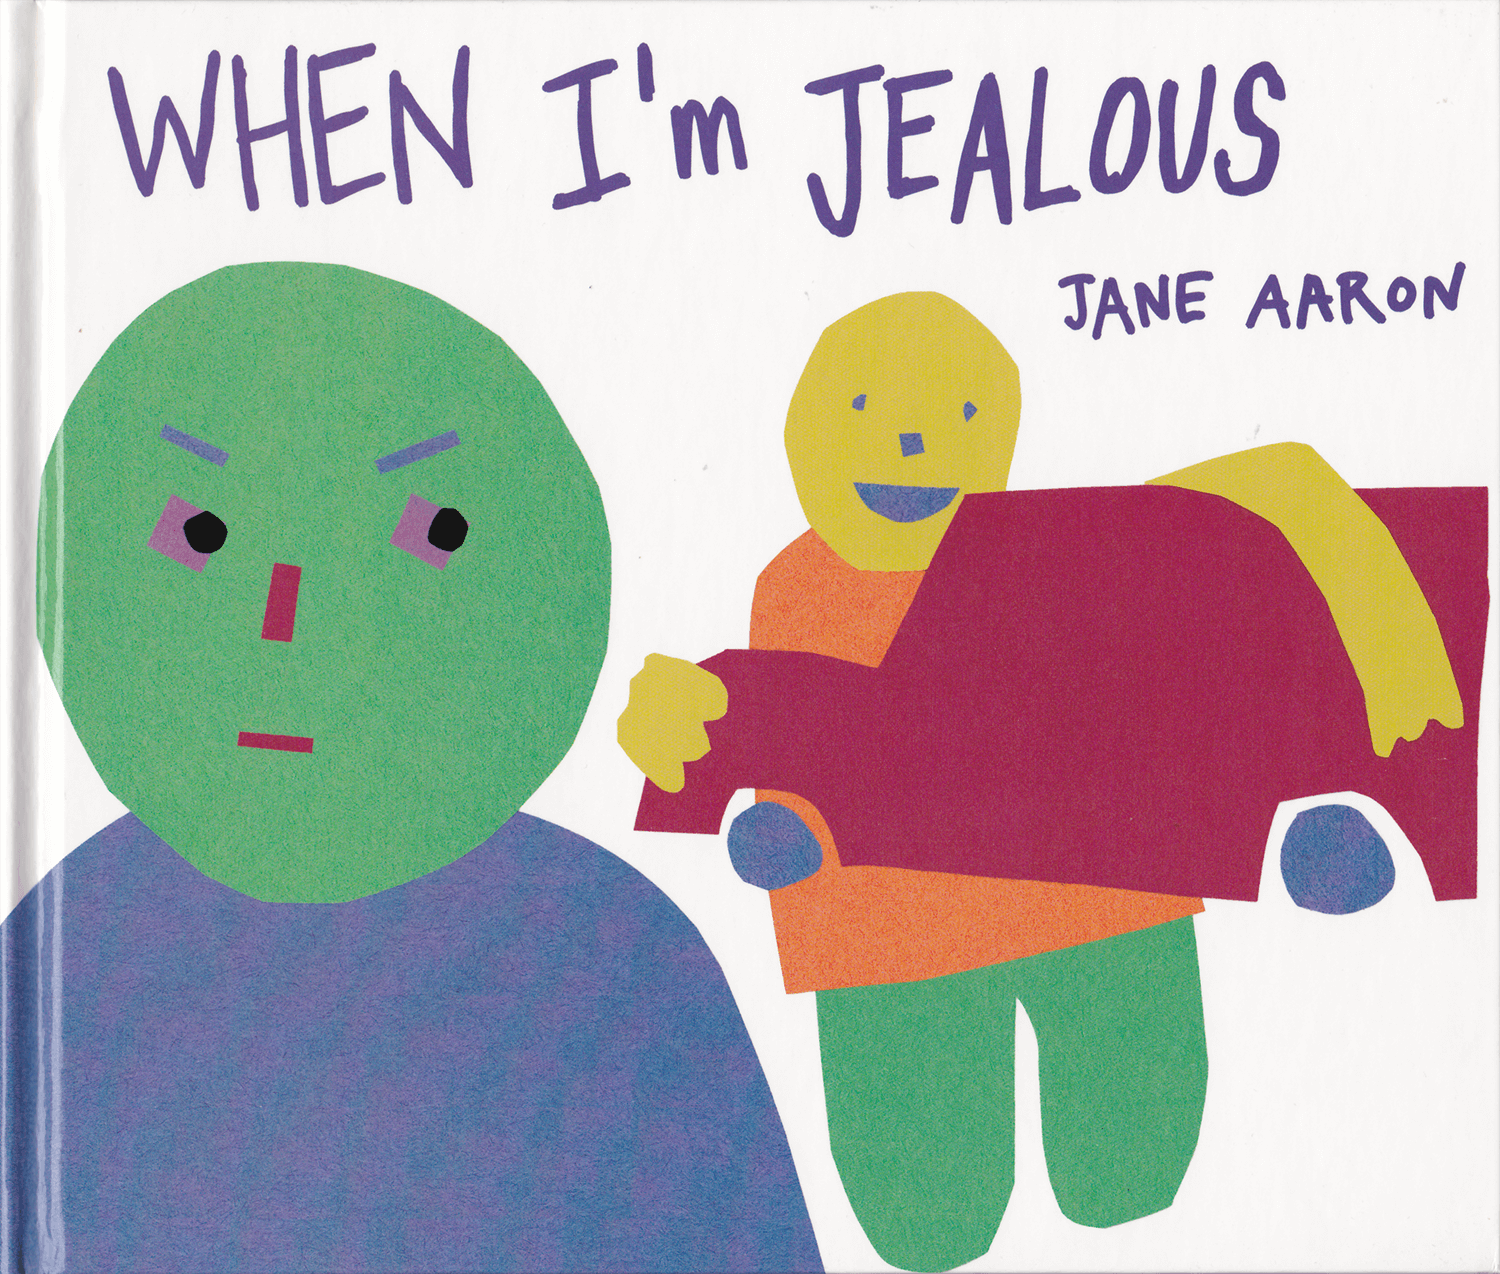 When I'm Jealous by Jane Aaron